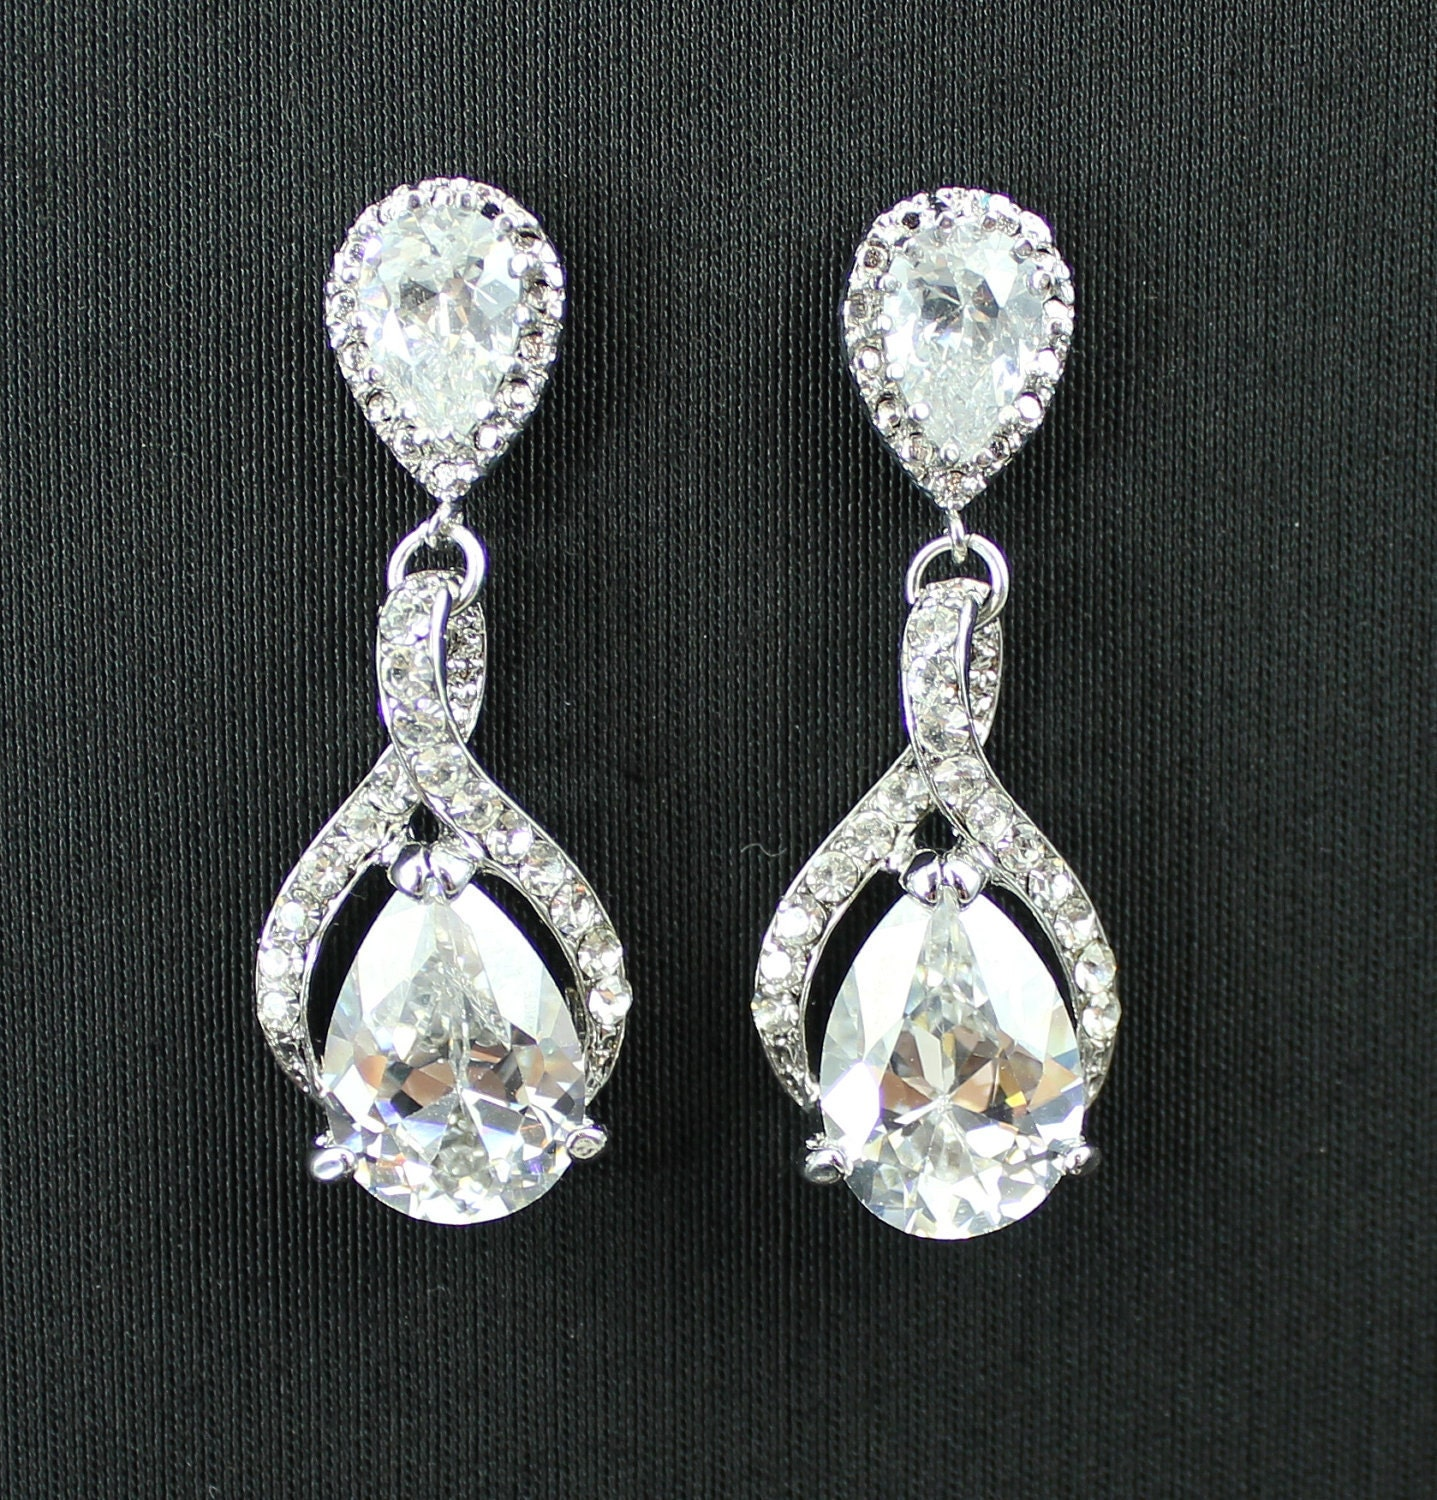 Bridal Crystal Earrings BRIDE Wedding Jewelry Bridesmaid GISELLE Be Frosted Collection